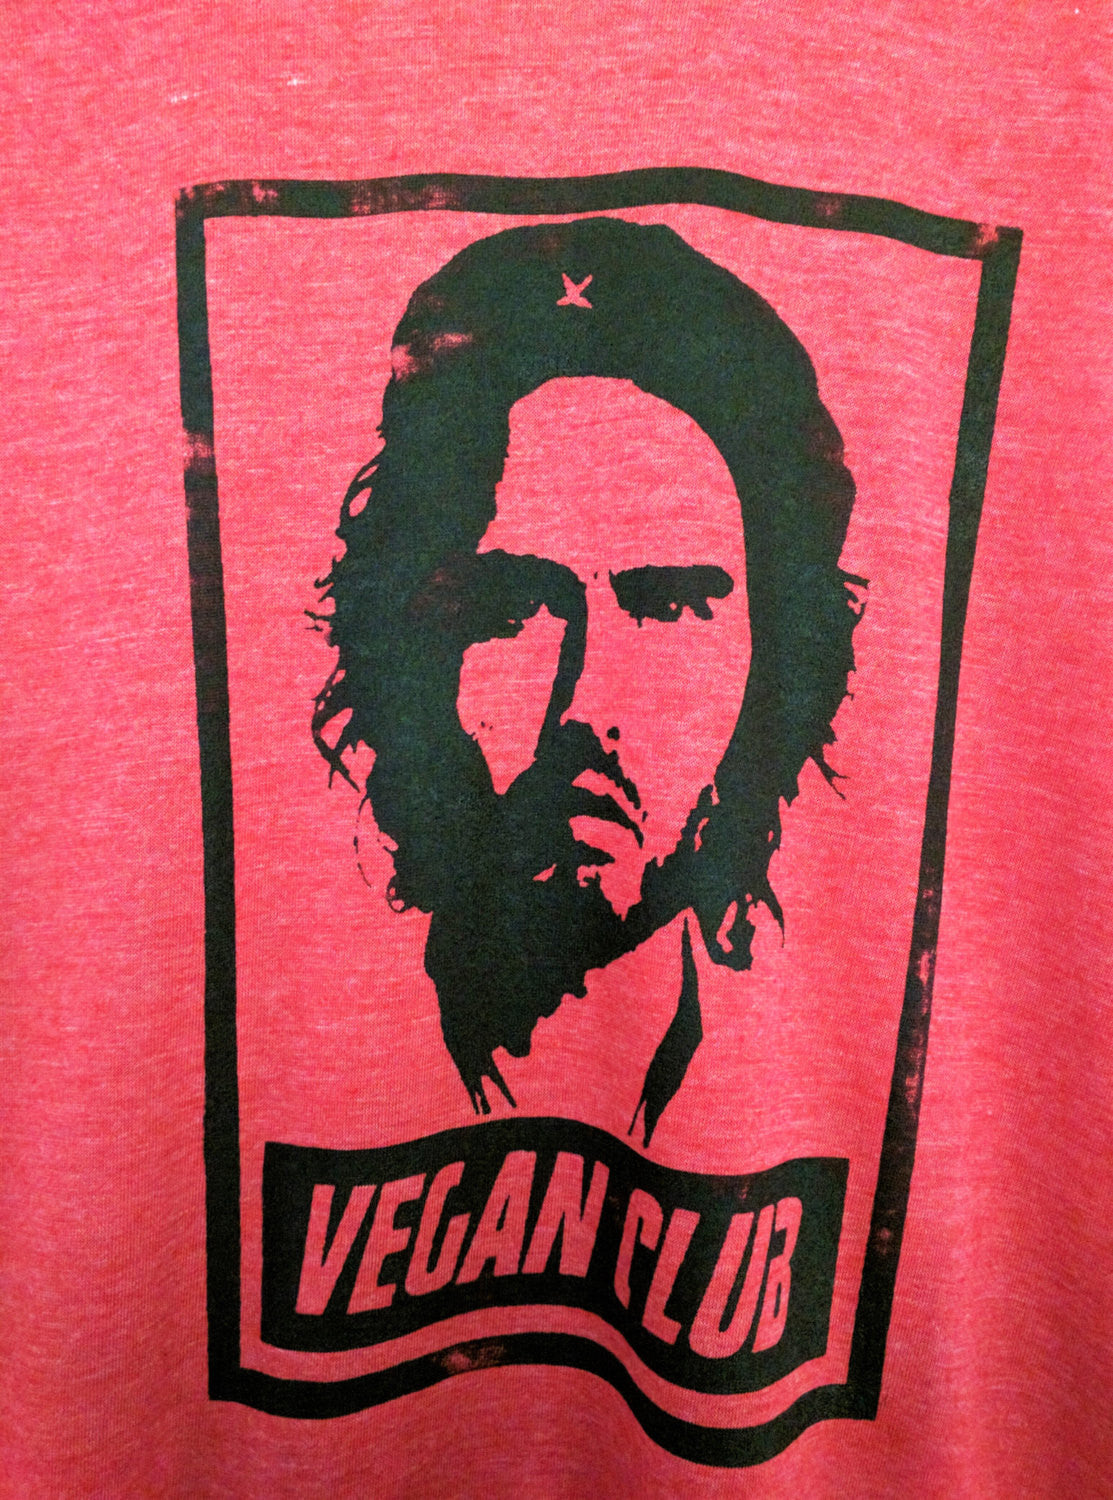 "Unisex T-shirt ""Vegan Club"" featuring Russell Brand a la Che Rebel Revolution handmade by L3F0u"